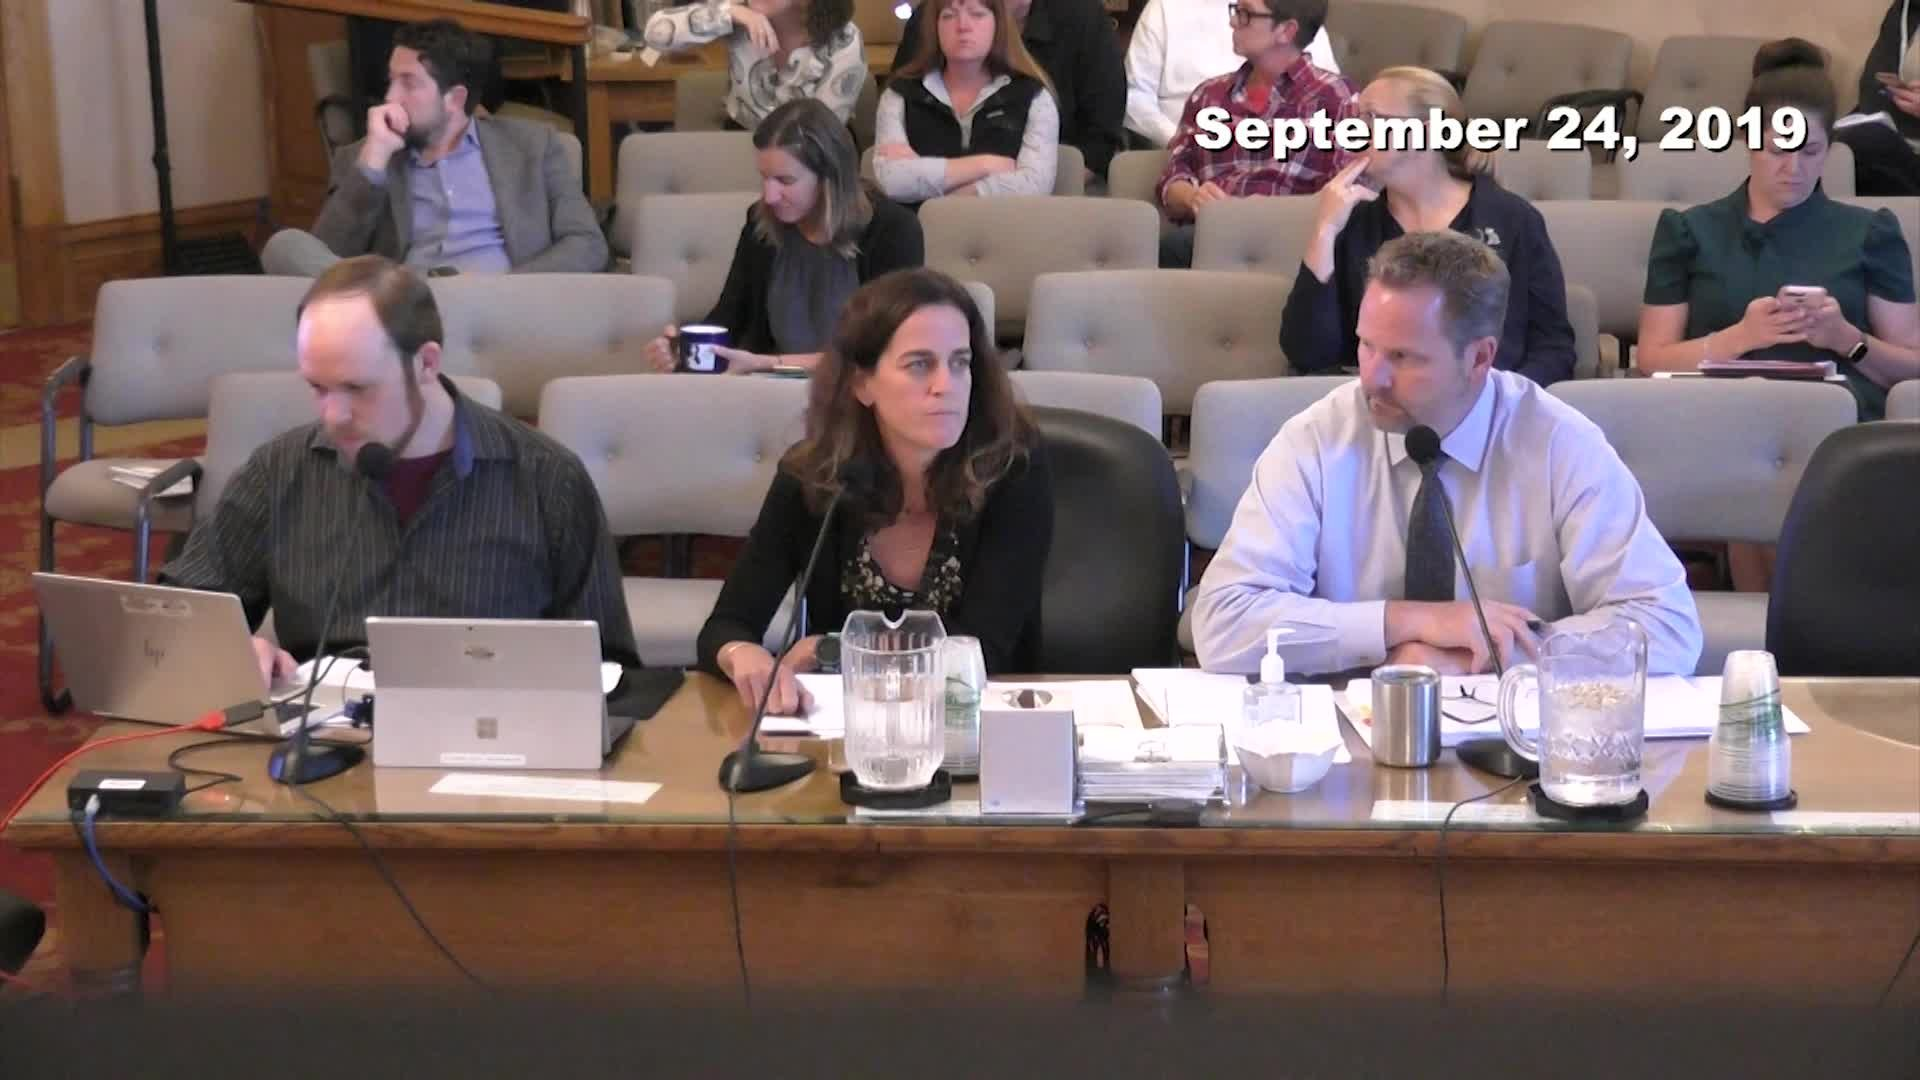 Redevelopment Agency (RDA) Meeting - 09/24/2019